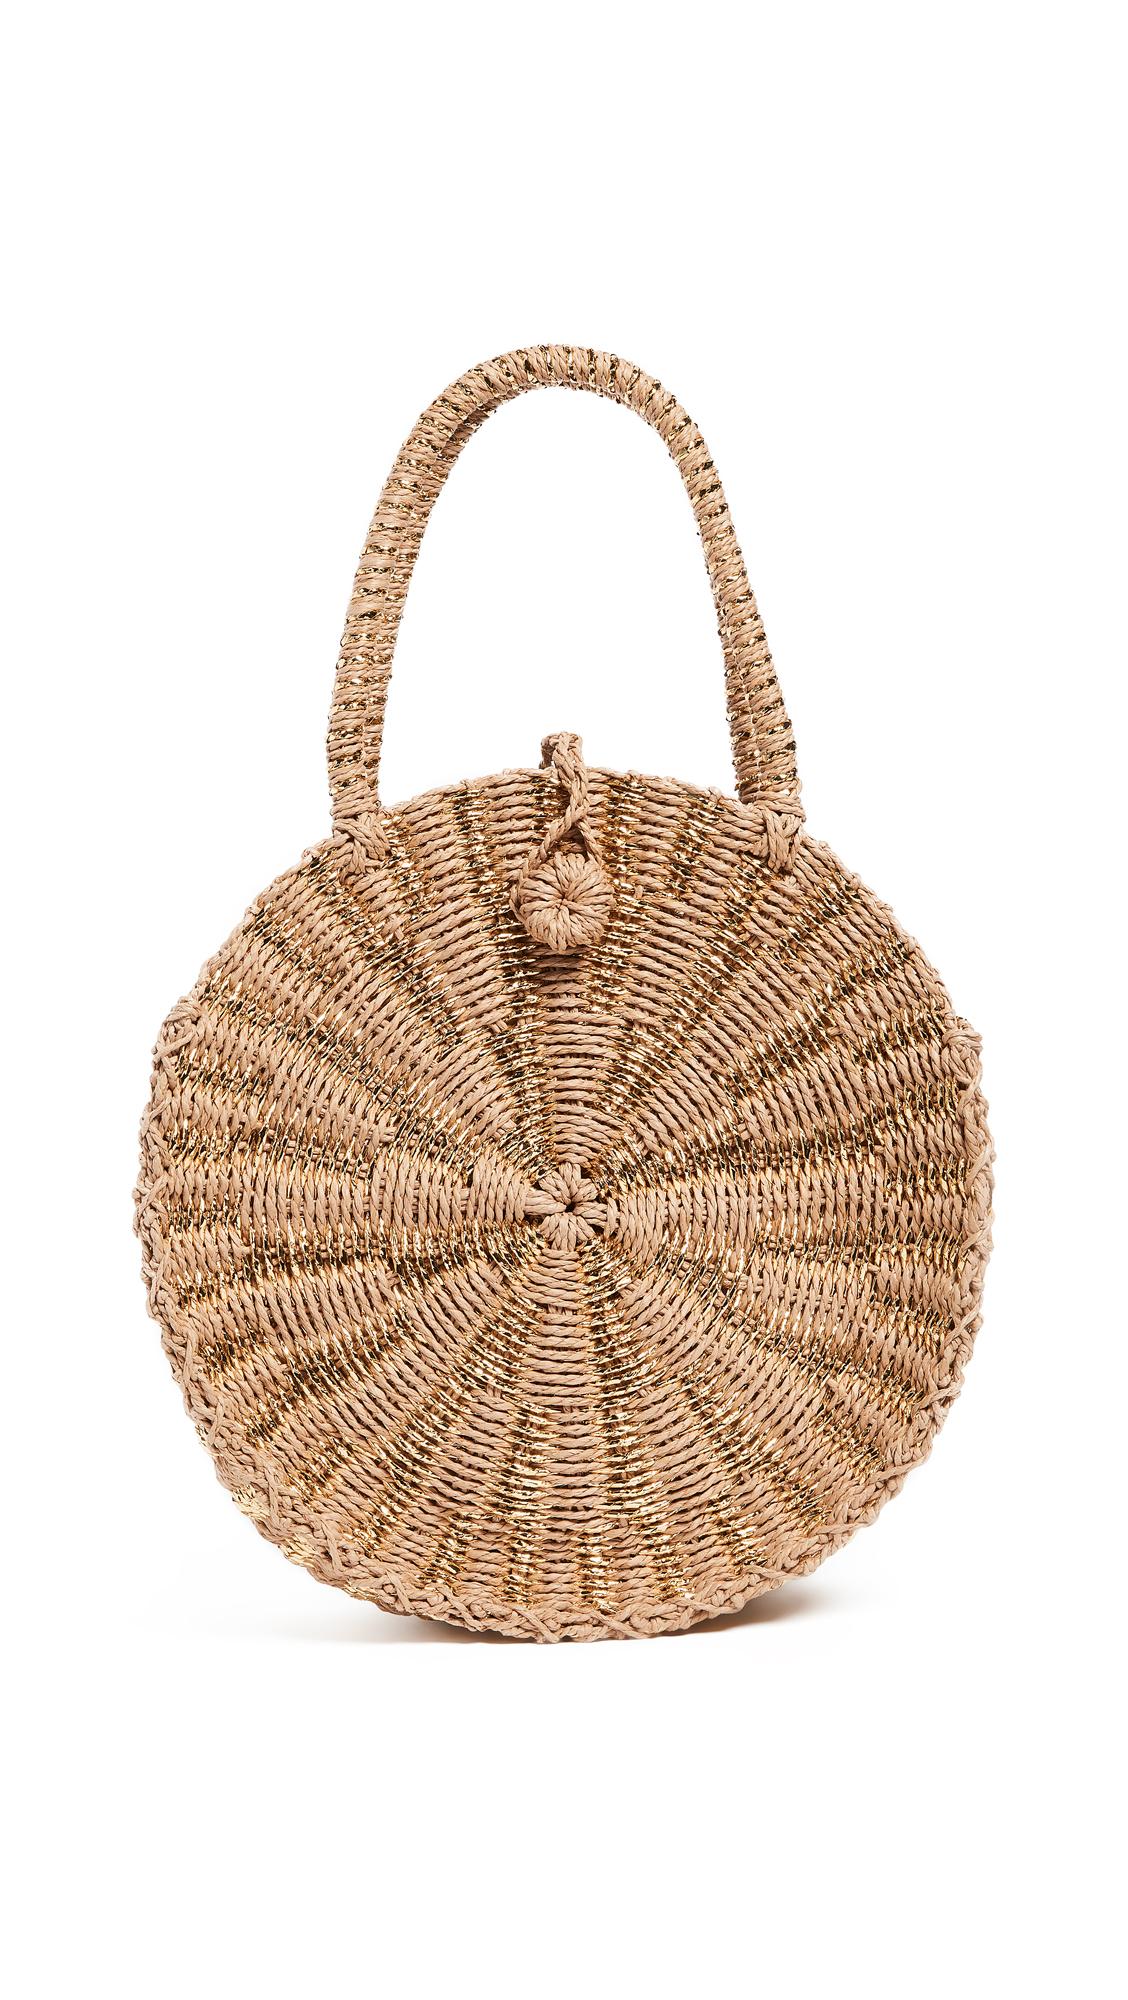 woven-bags-and-accessories-2018-round